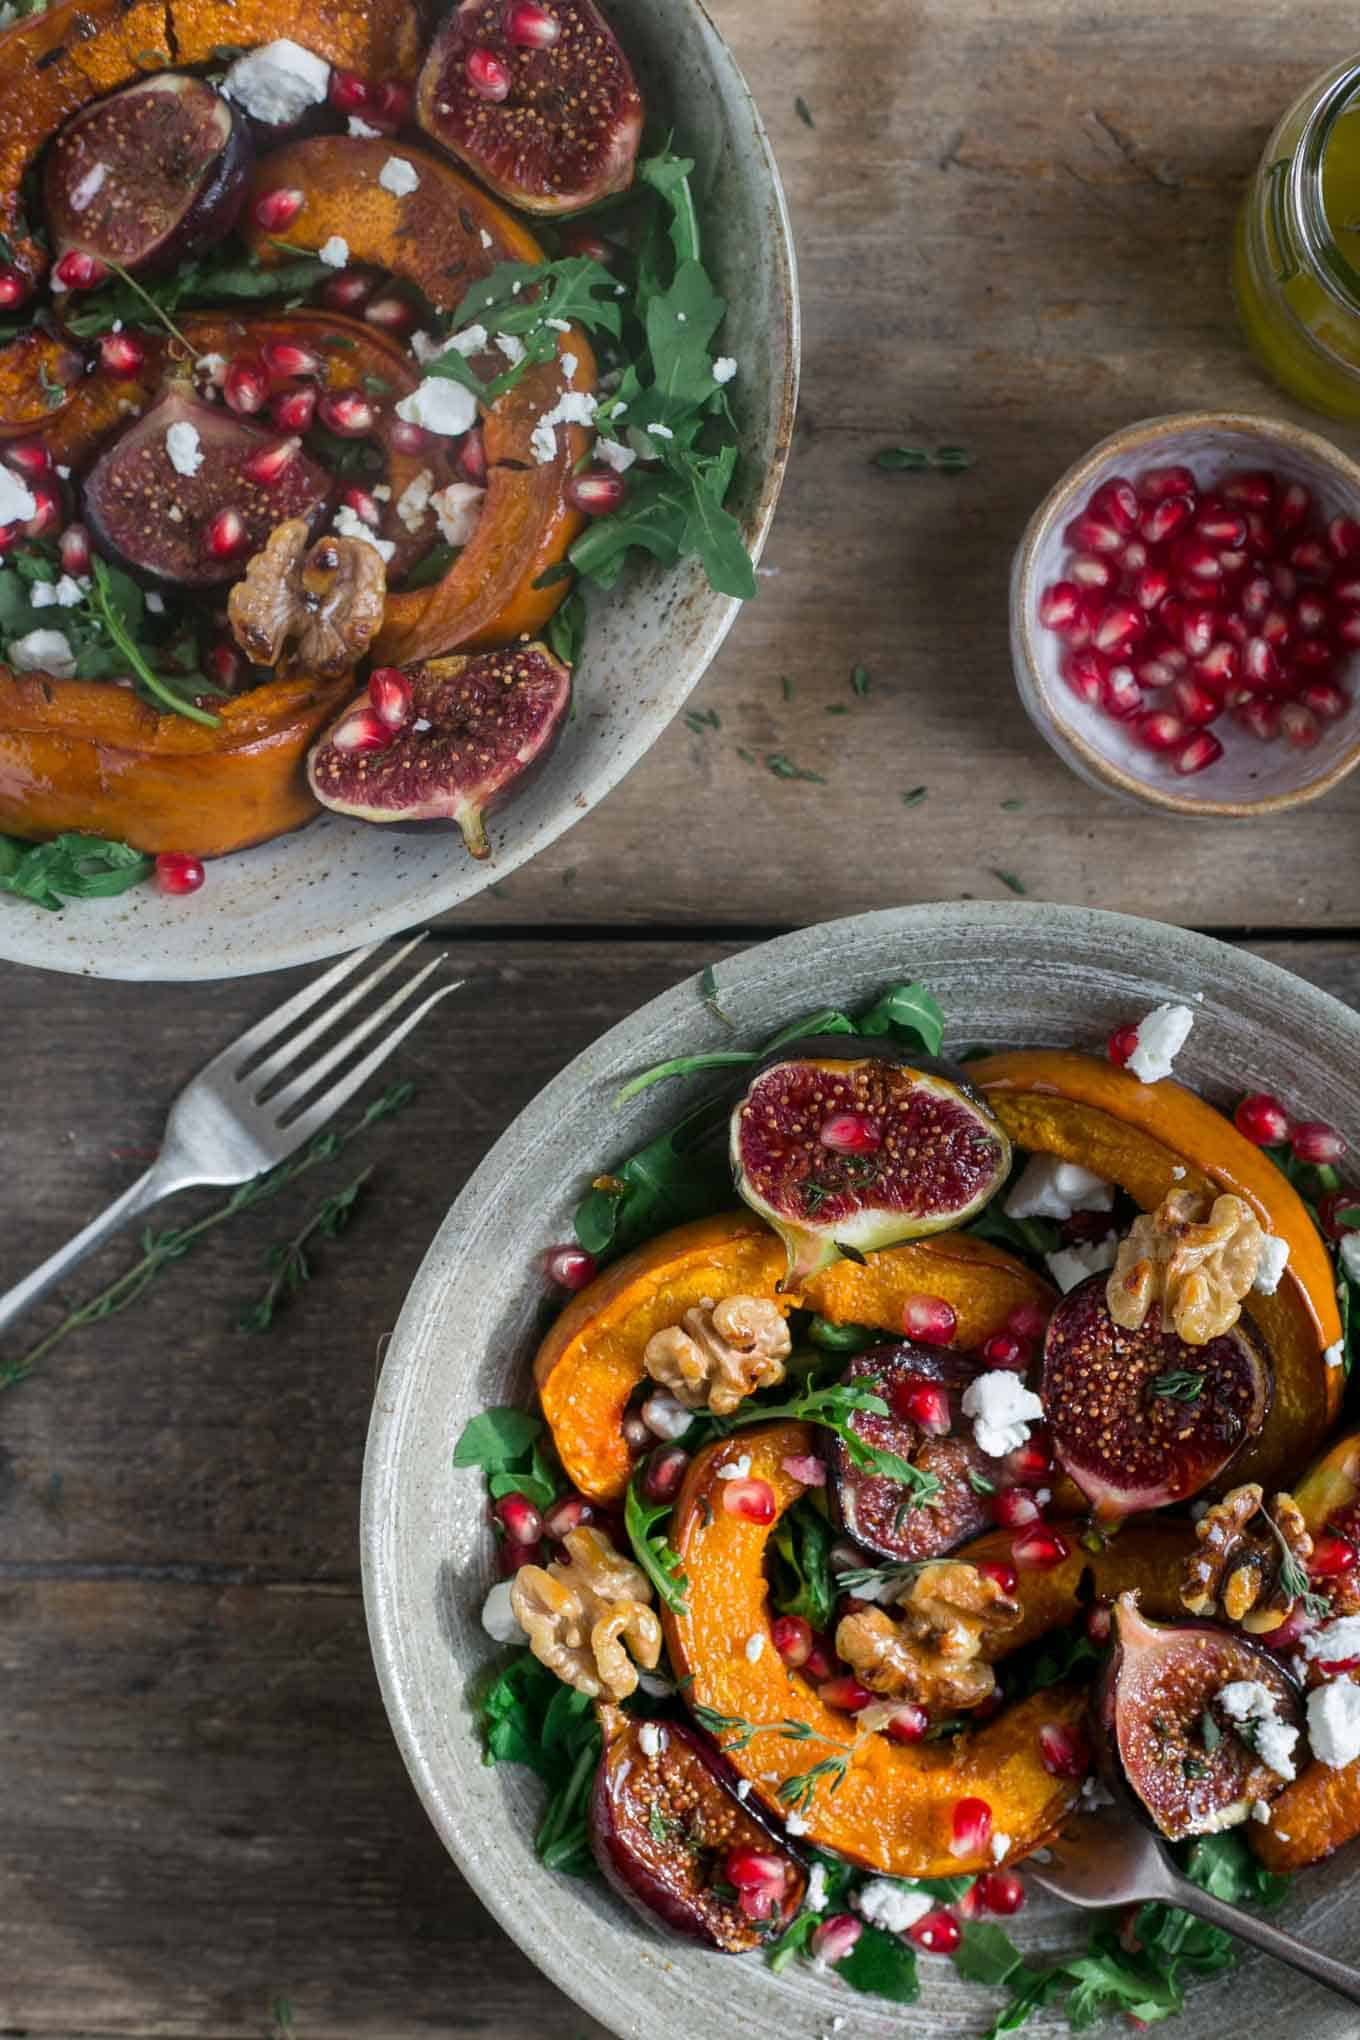 Perfect autumnal salad with roasted pumpkin, walnuts and figs #vegetarian #vegan | via @annabanana.co